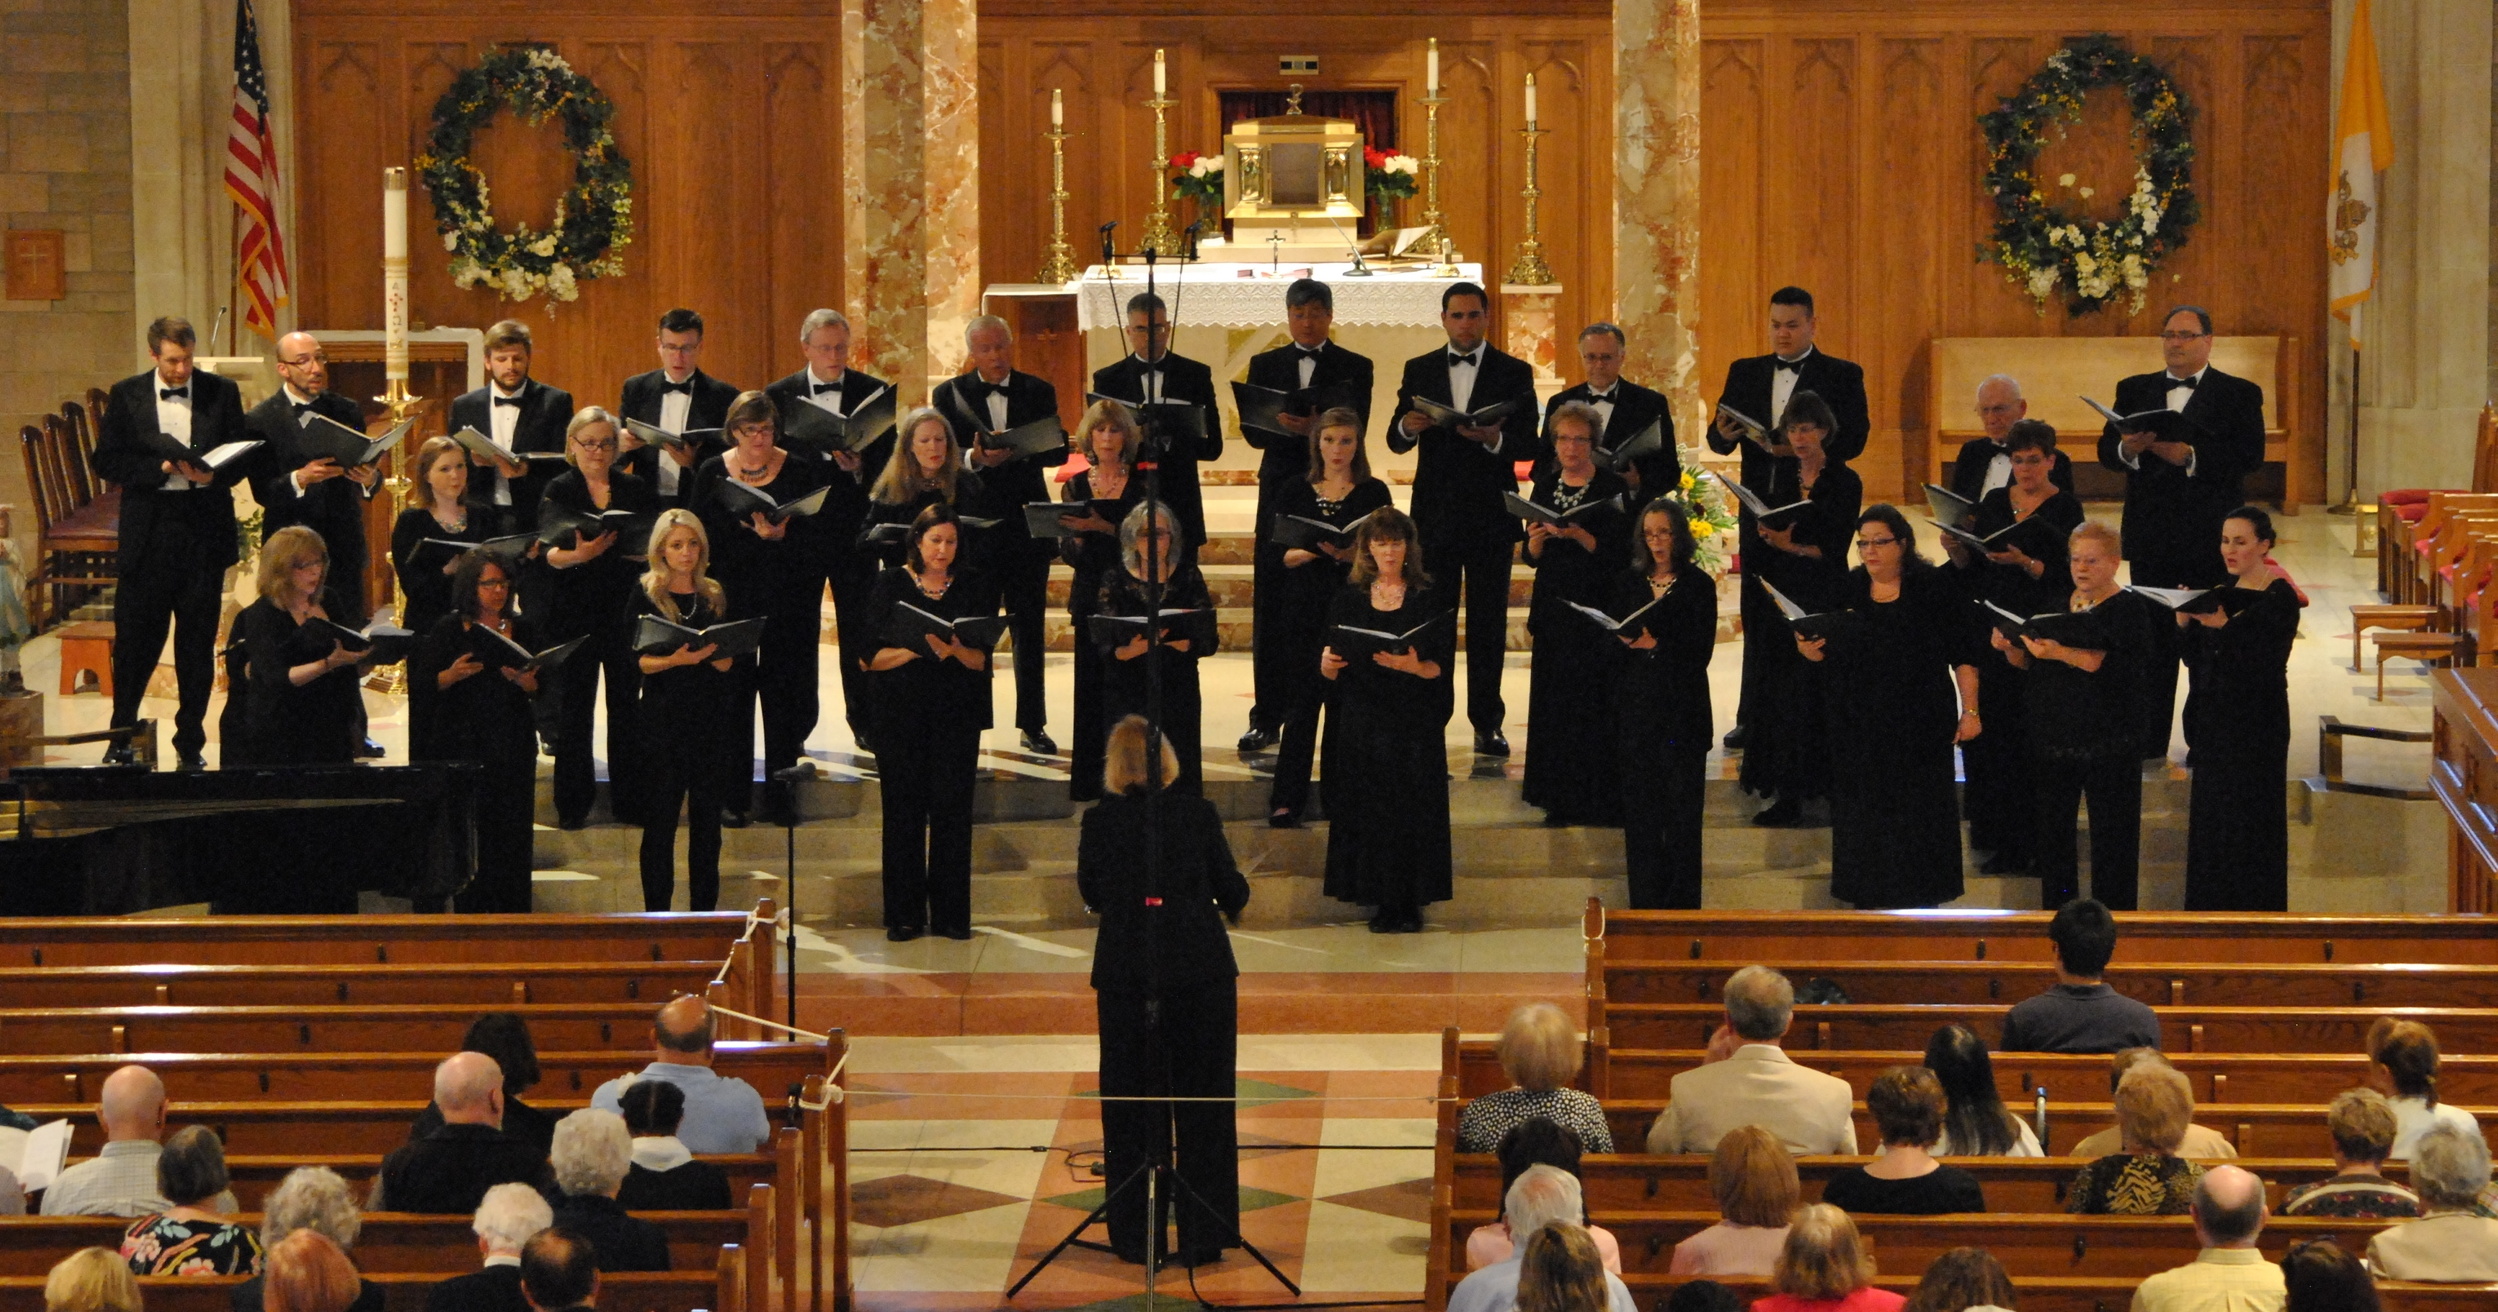 Psalms, Songs, and Spirituals Sunday, 3rd ofMay 2015 at St. Theresa's Church, Trumbull, CT